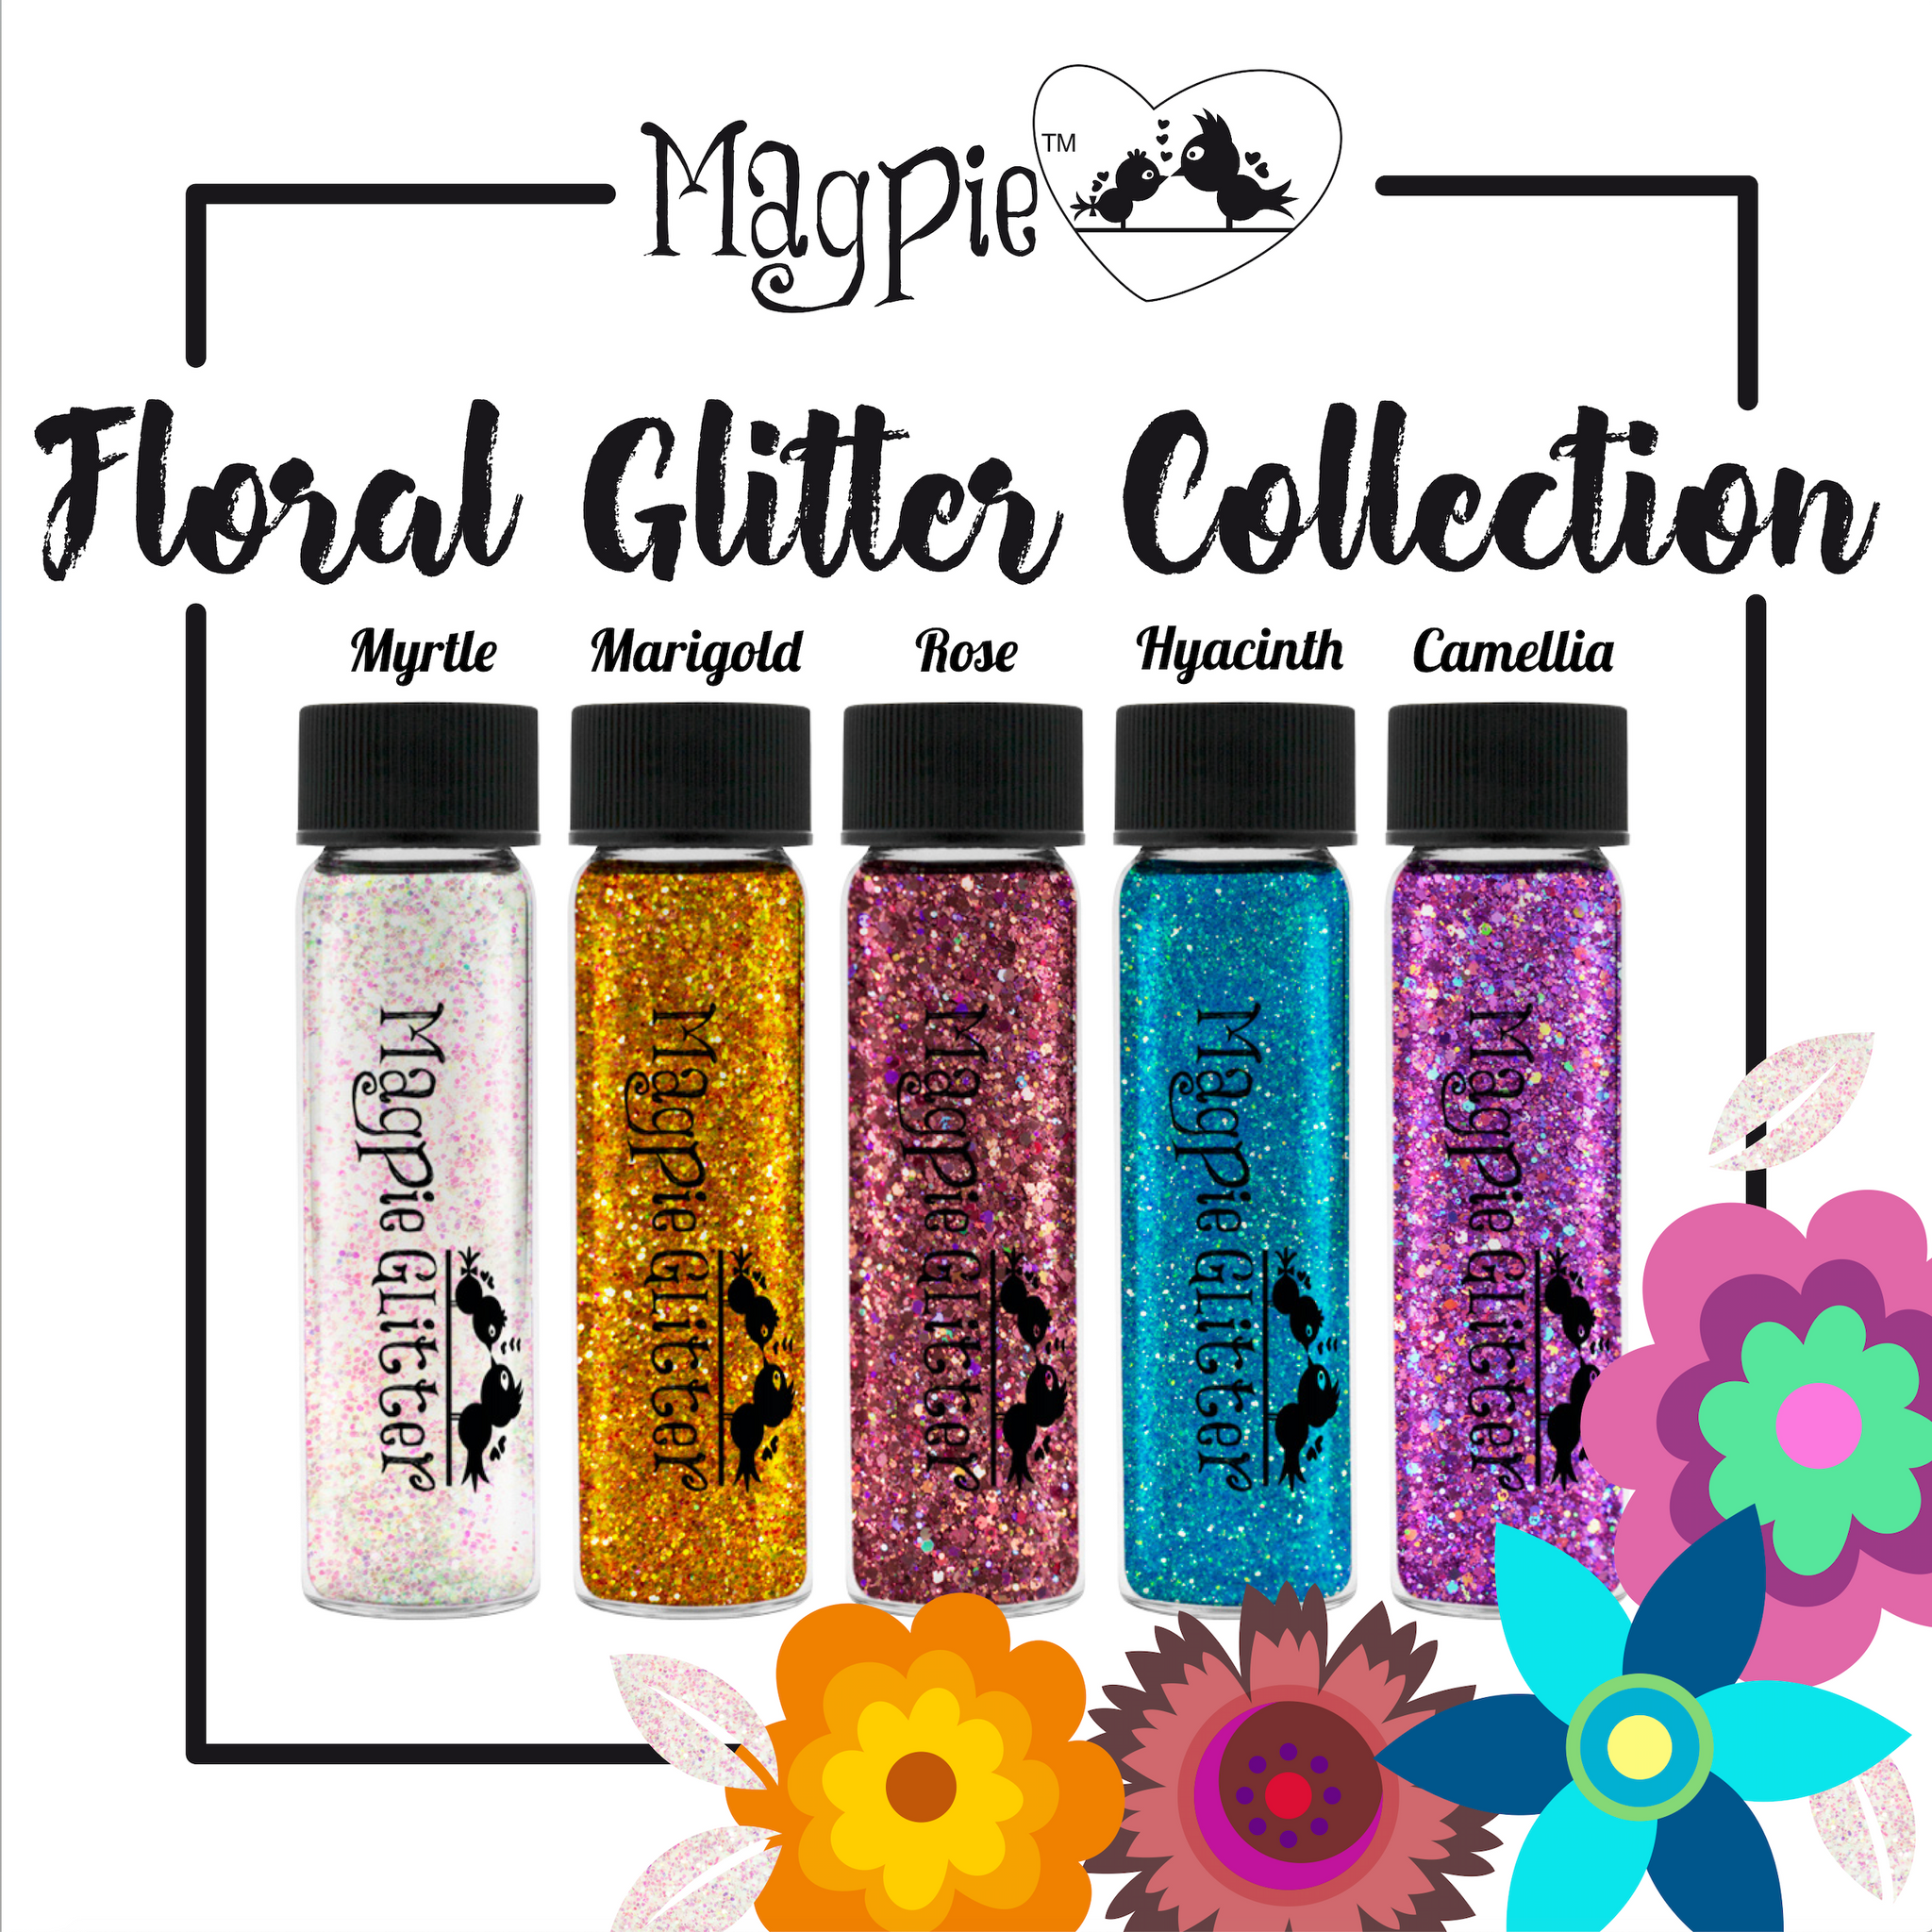 Floral Glitter collection 2019